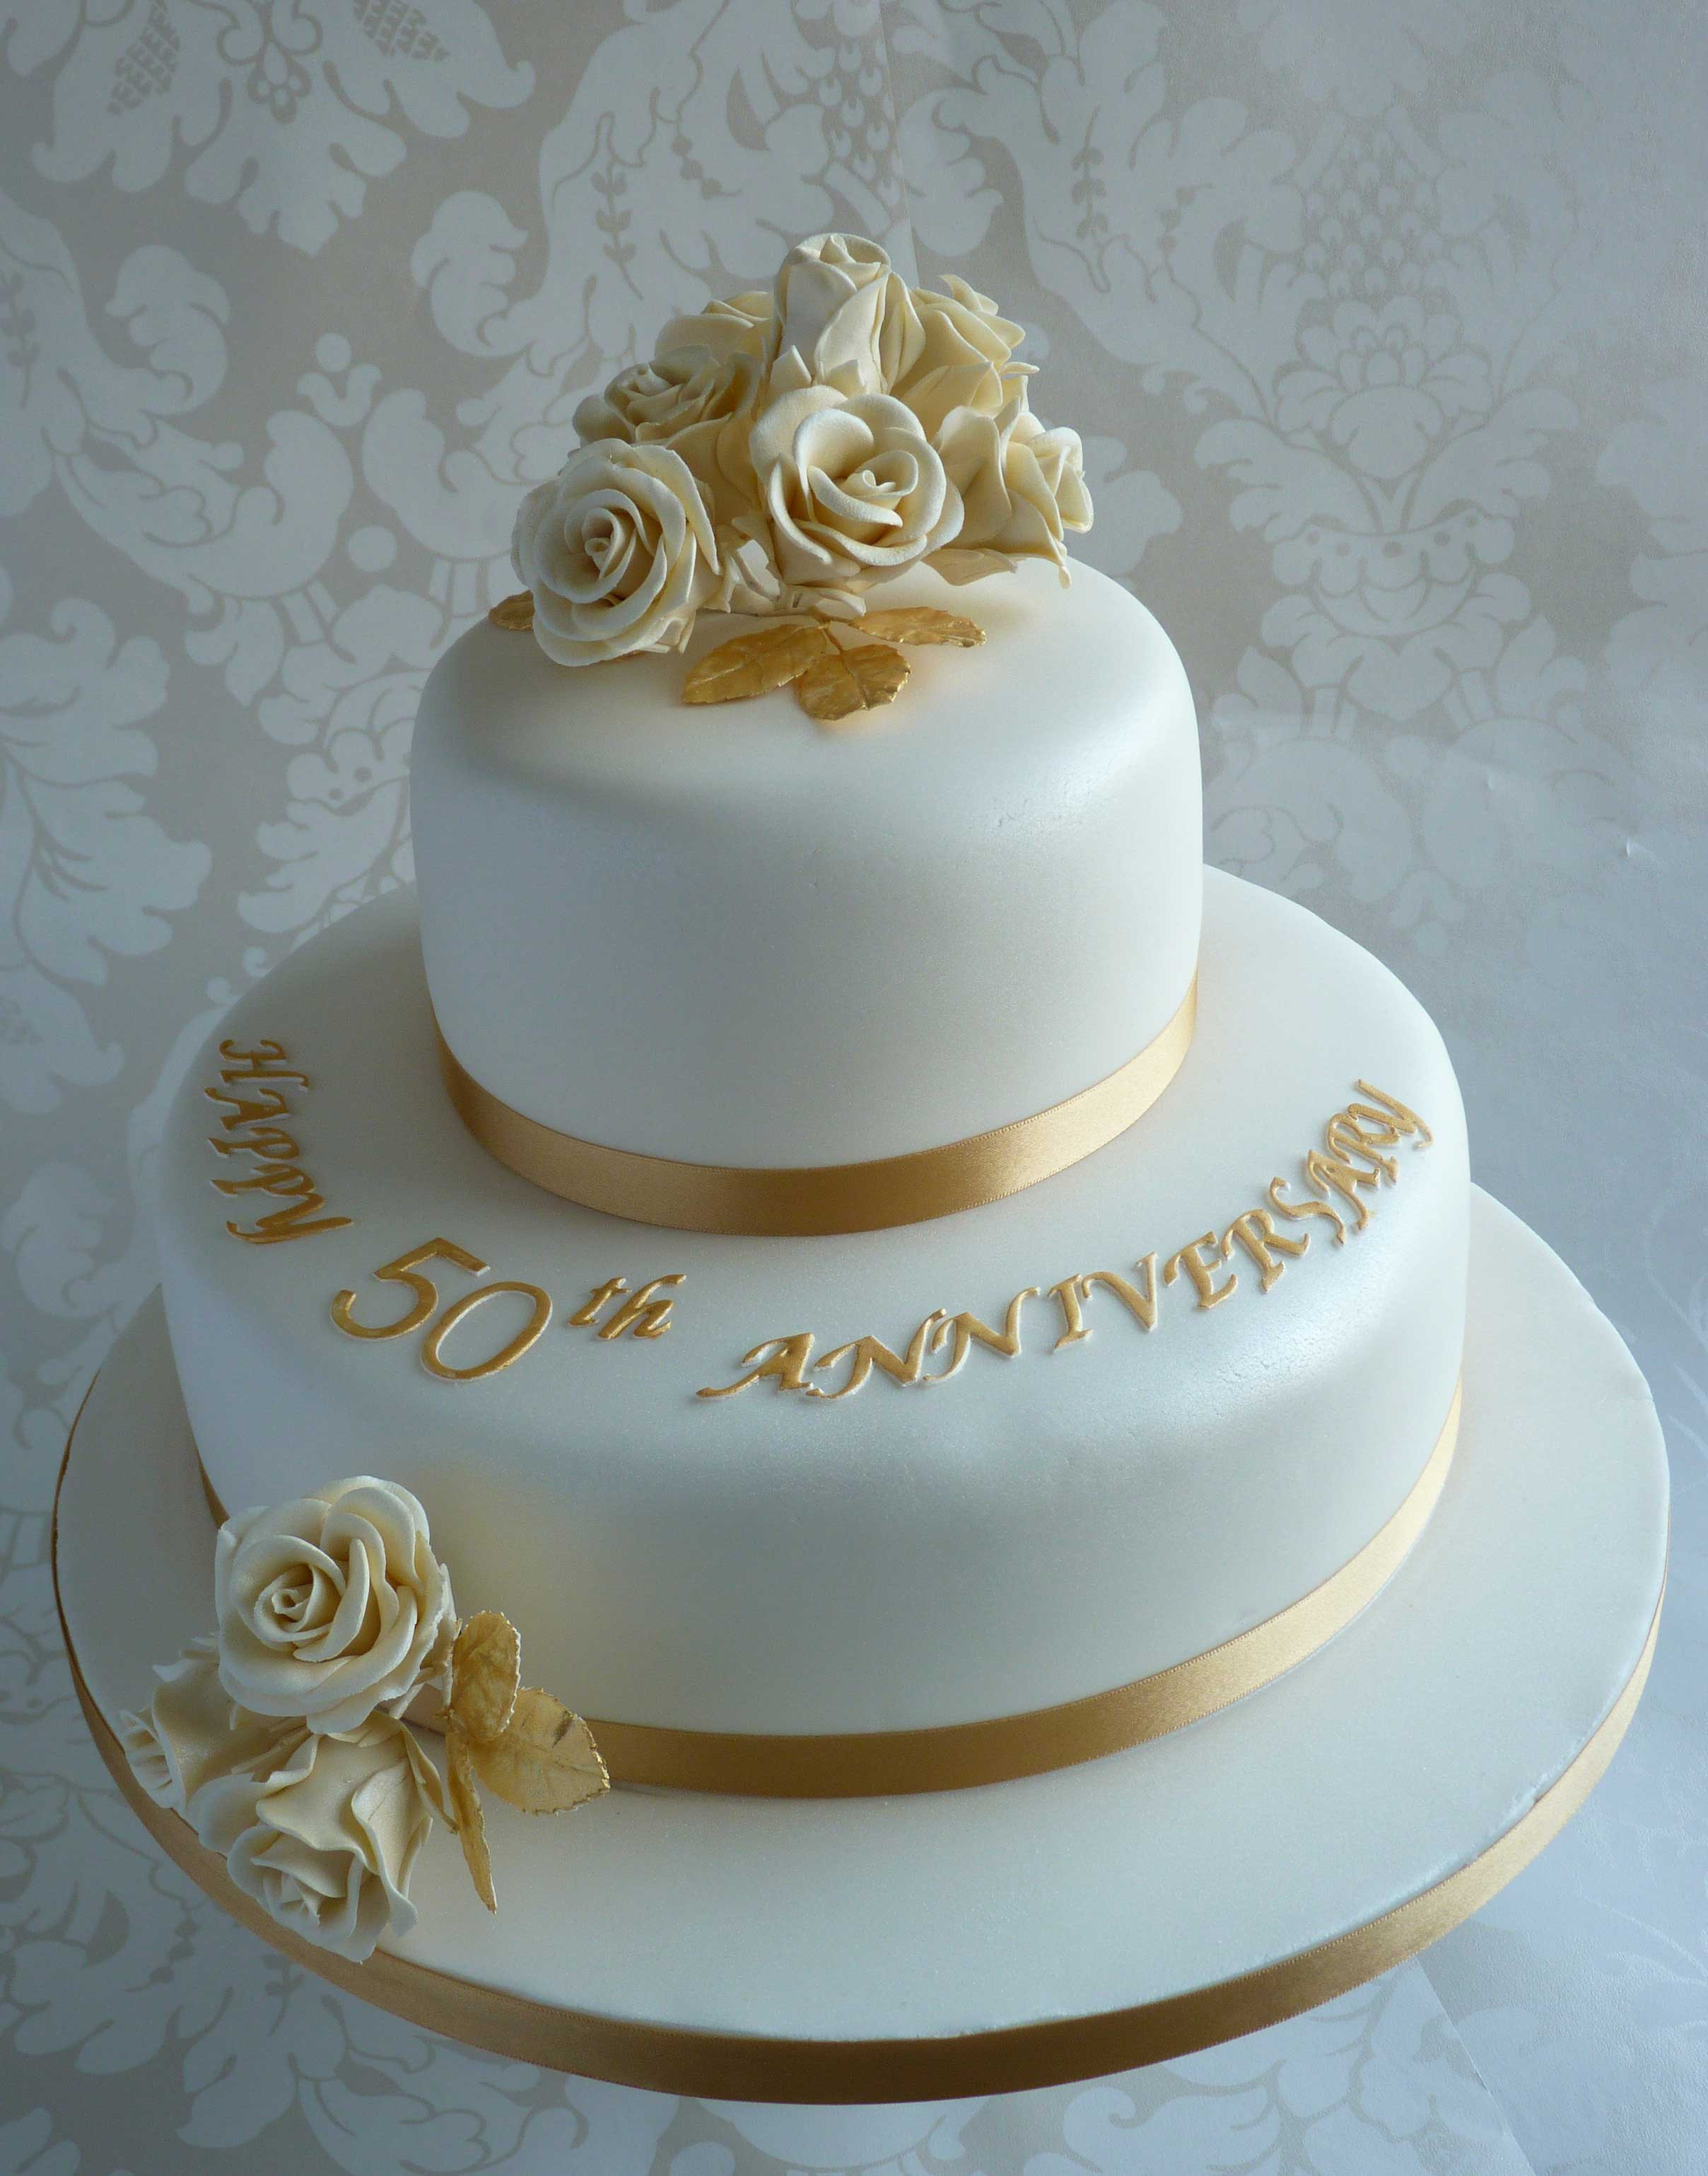 Golden Wedding Anniversary Cakes  Gold and Elegant 50th Anniversary Cake Decoration Idea